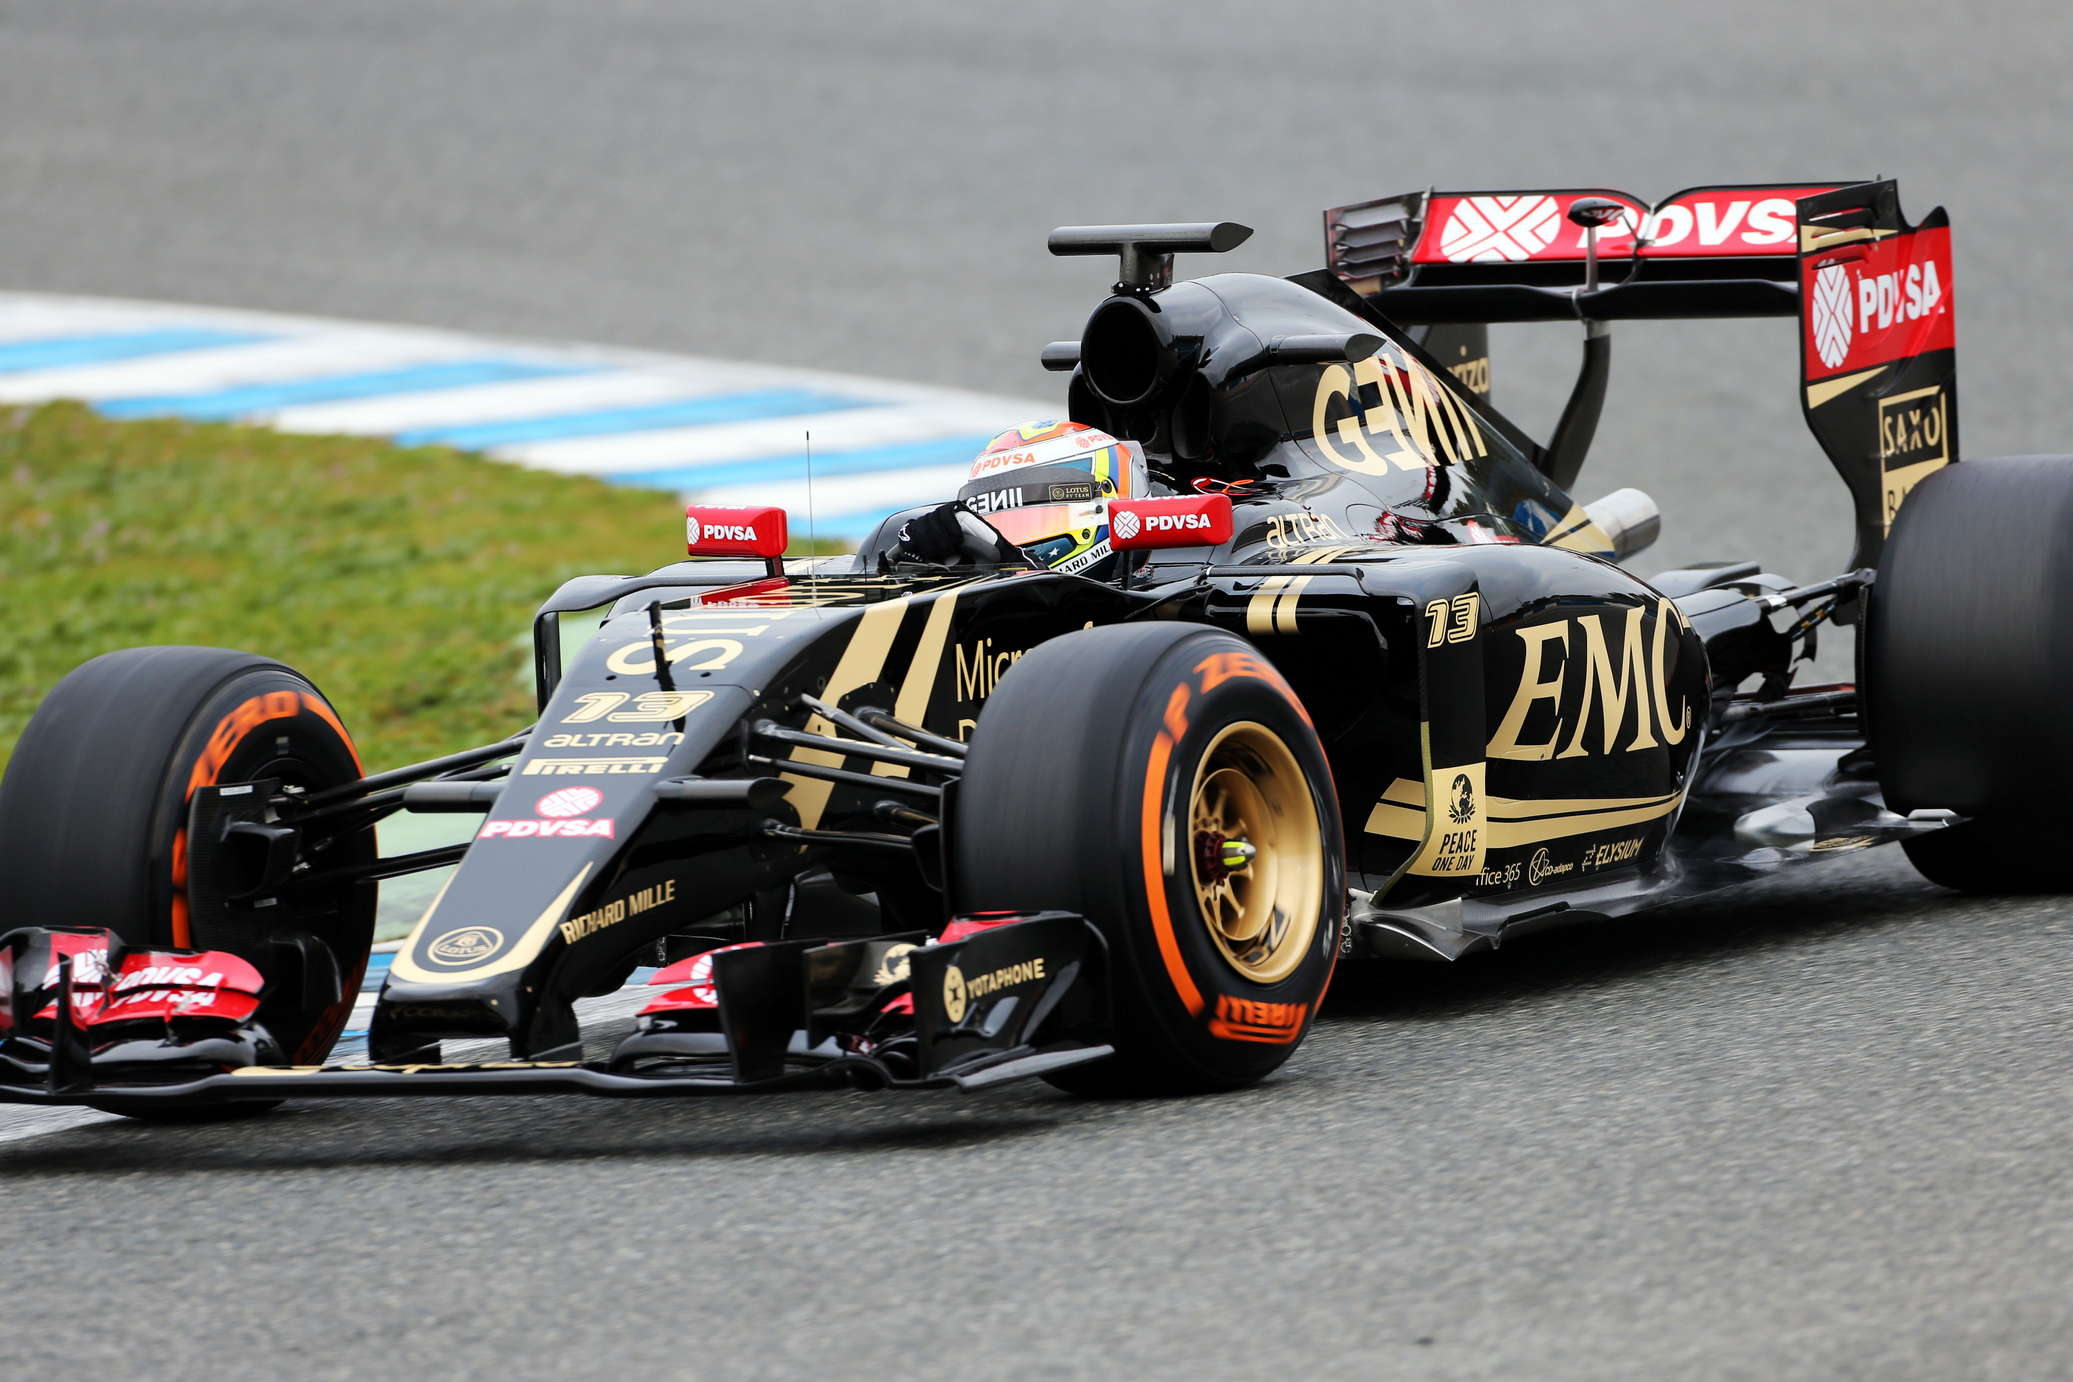 F1 Lotus Look To Open Their Account Sportsjuggle